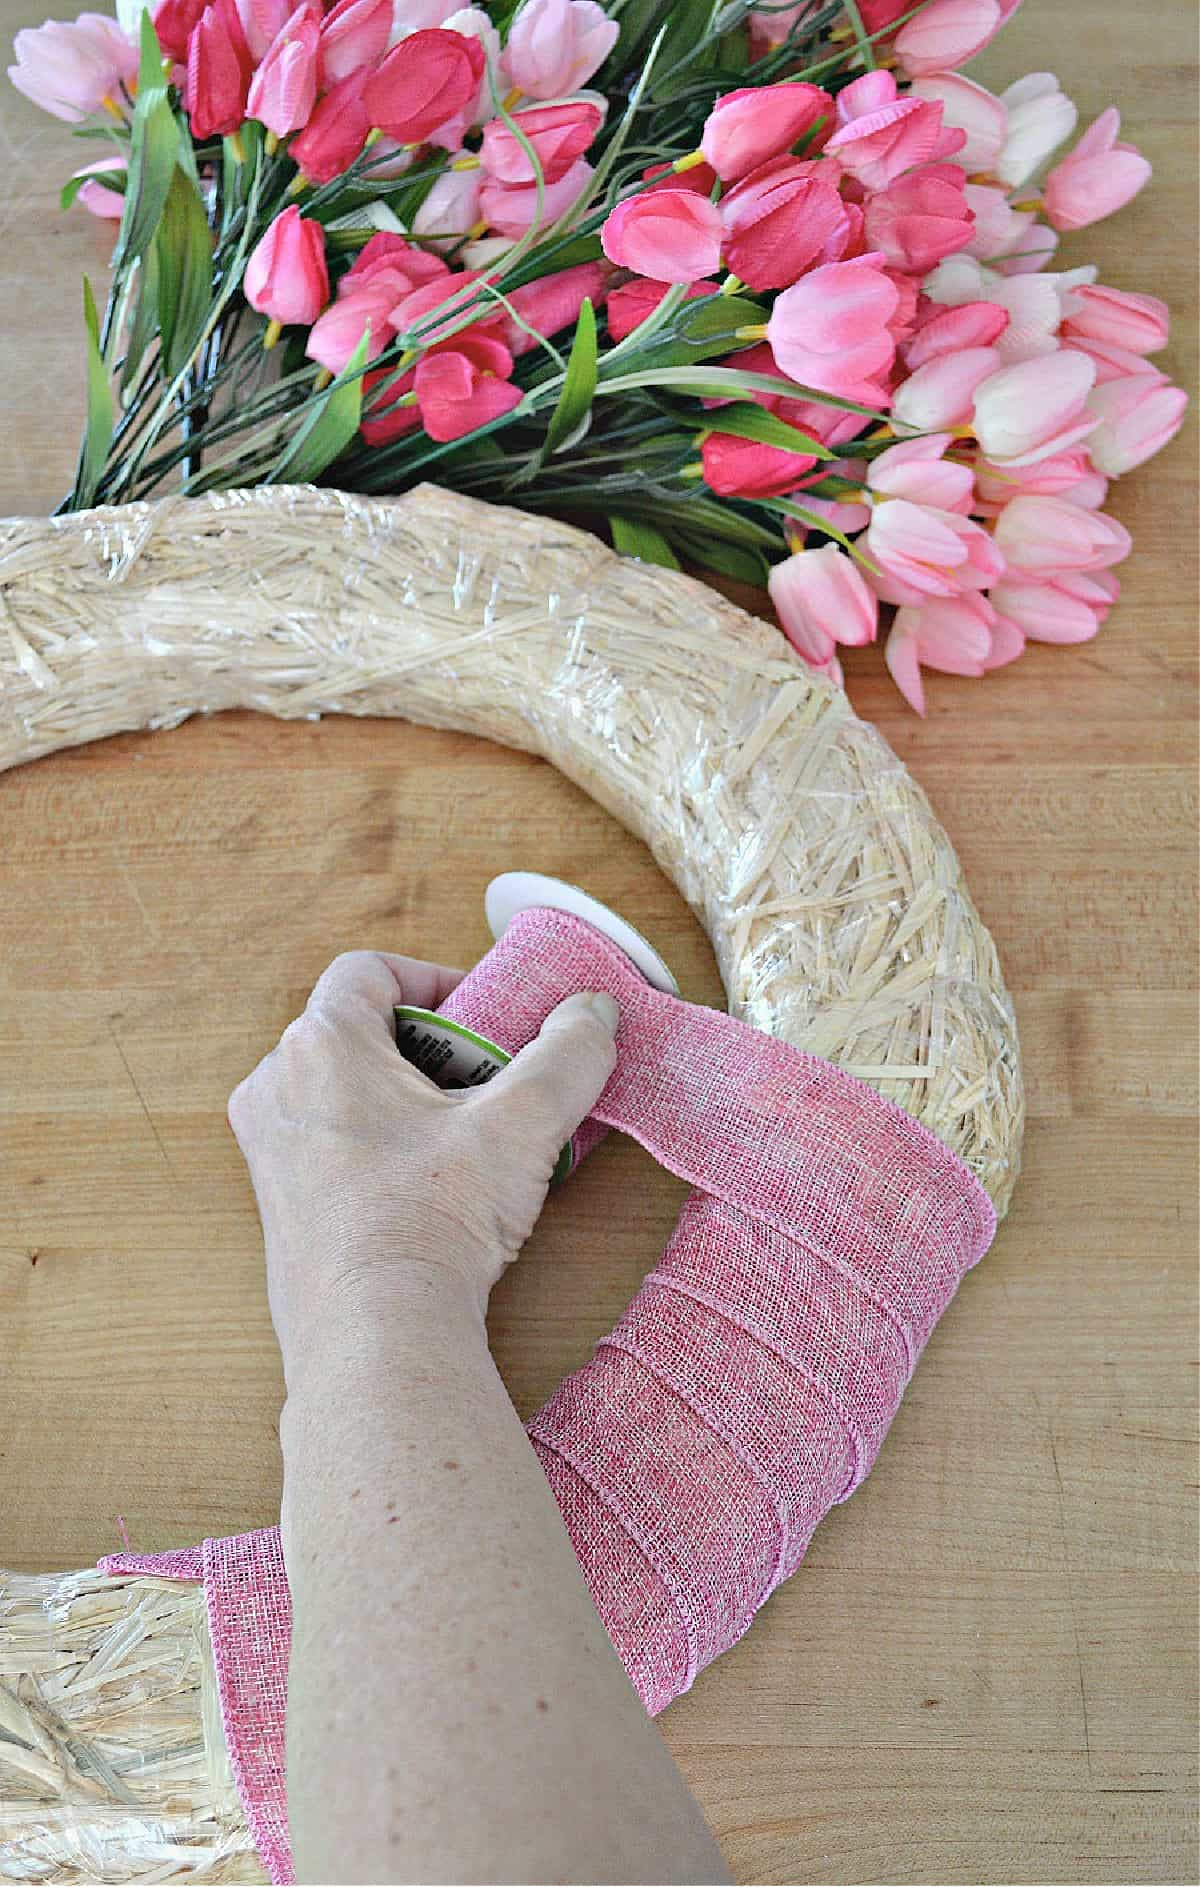 wrapping straw wreath form with pink ribbon